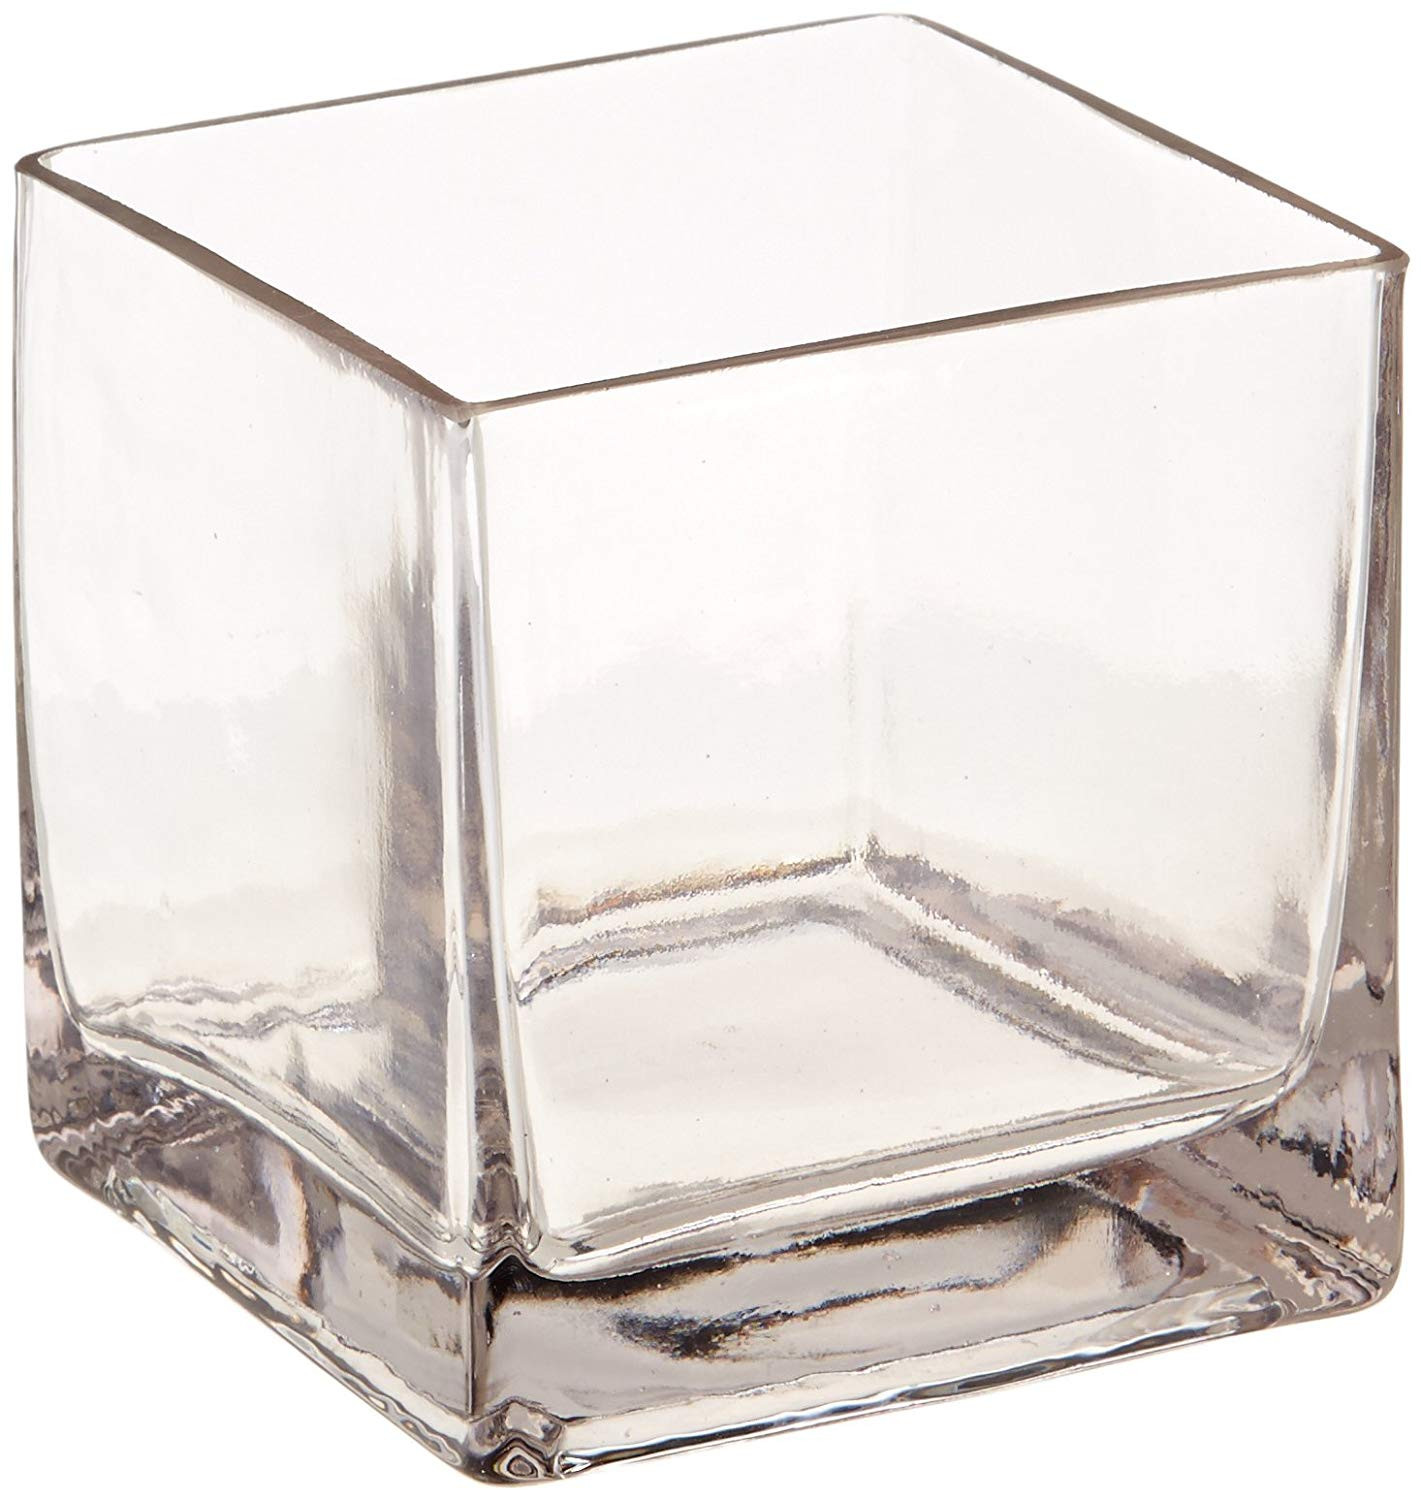 24 inch glass vase of amazon com 12piece 4 square crystal clear glass vase home kitchen with 71 jezfmvnl sl1500